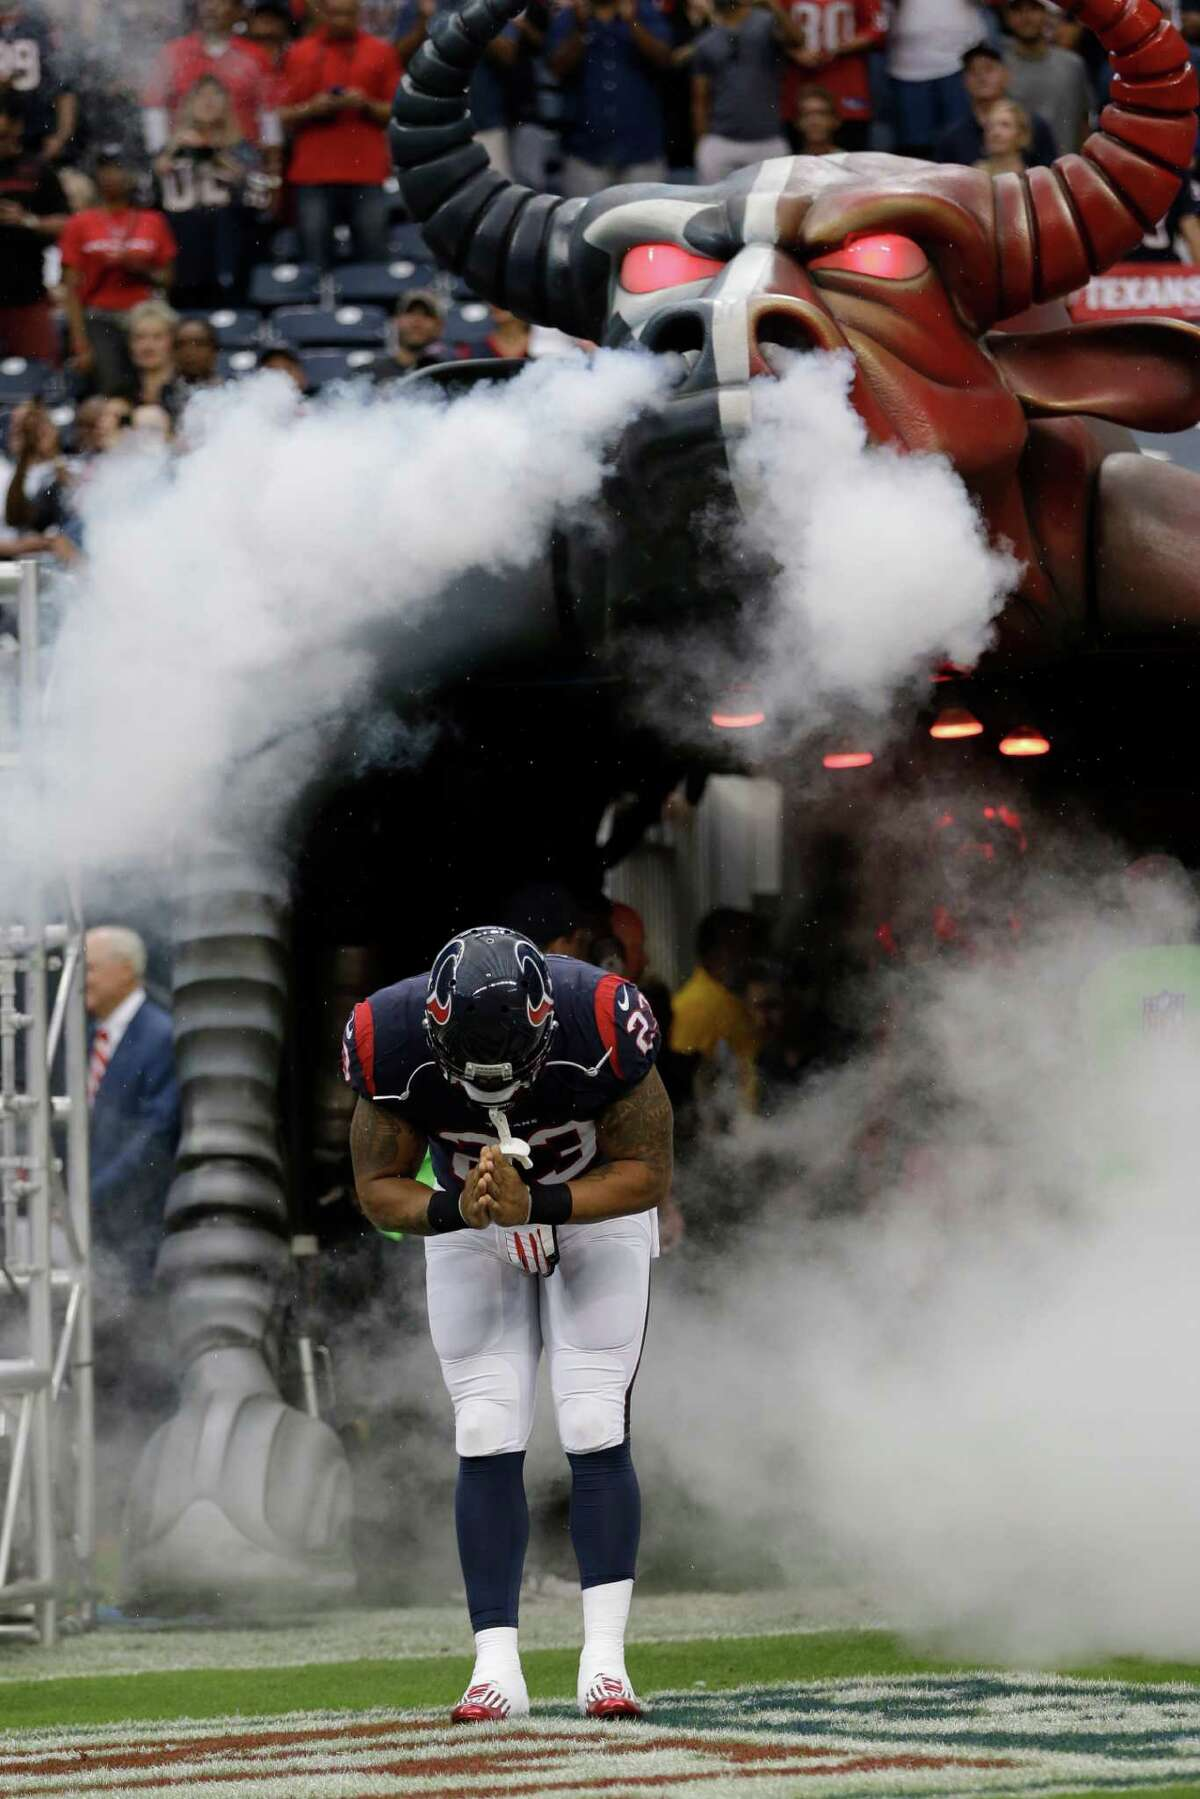 Houston Texans running back Arian Foster (23) is introduces before an NFL football game against the Seattle Seahawks Sunday, Sept. 29, 2013, in Houston. (AP Photo/David J. Phillip)